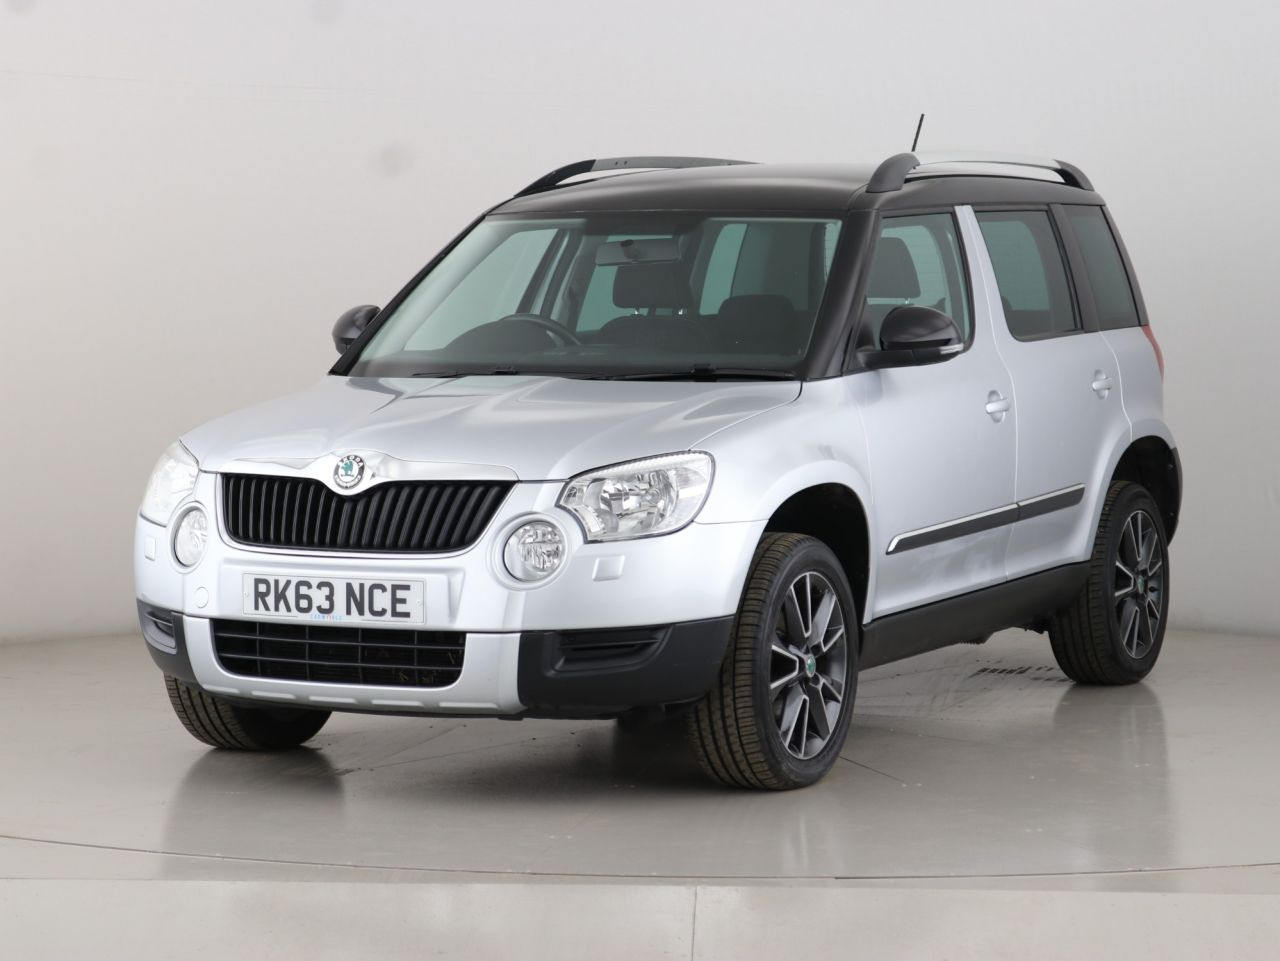 2013 Skoda Yeti Adventure Tdi Cr 6 300